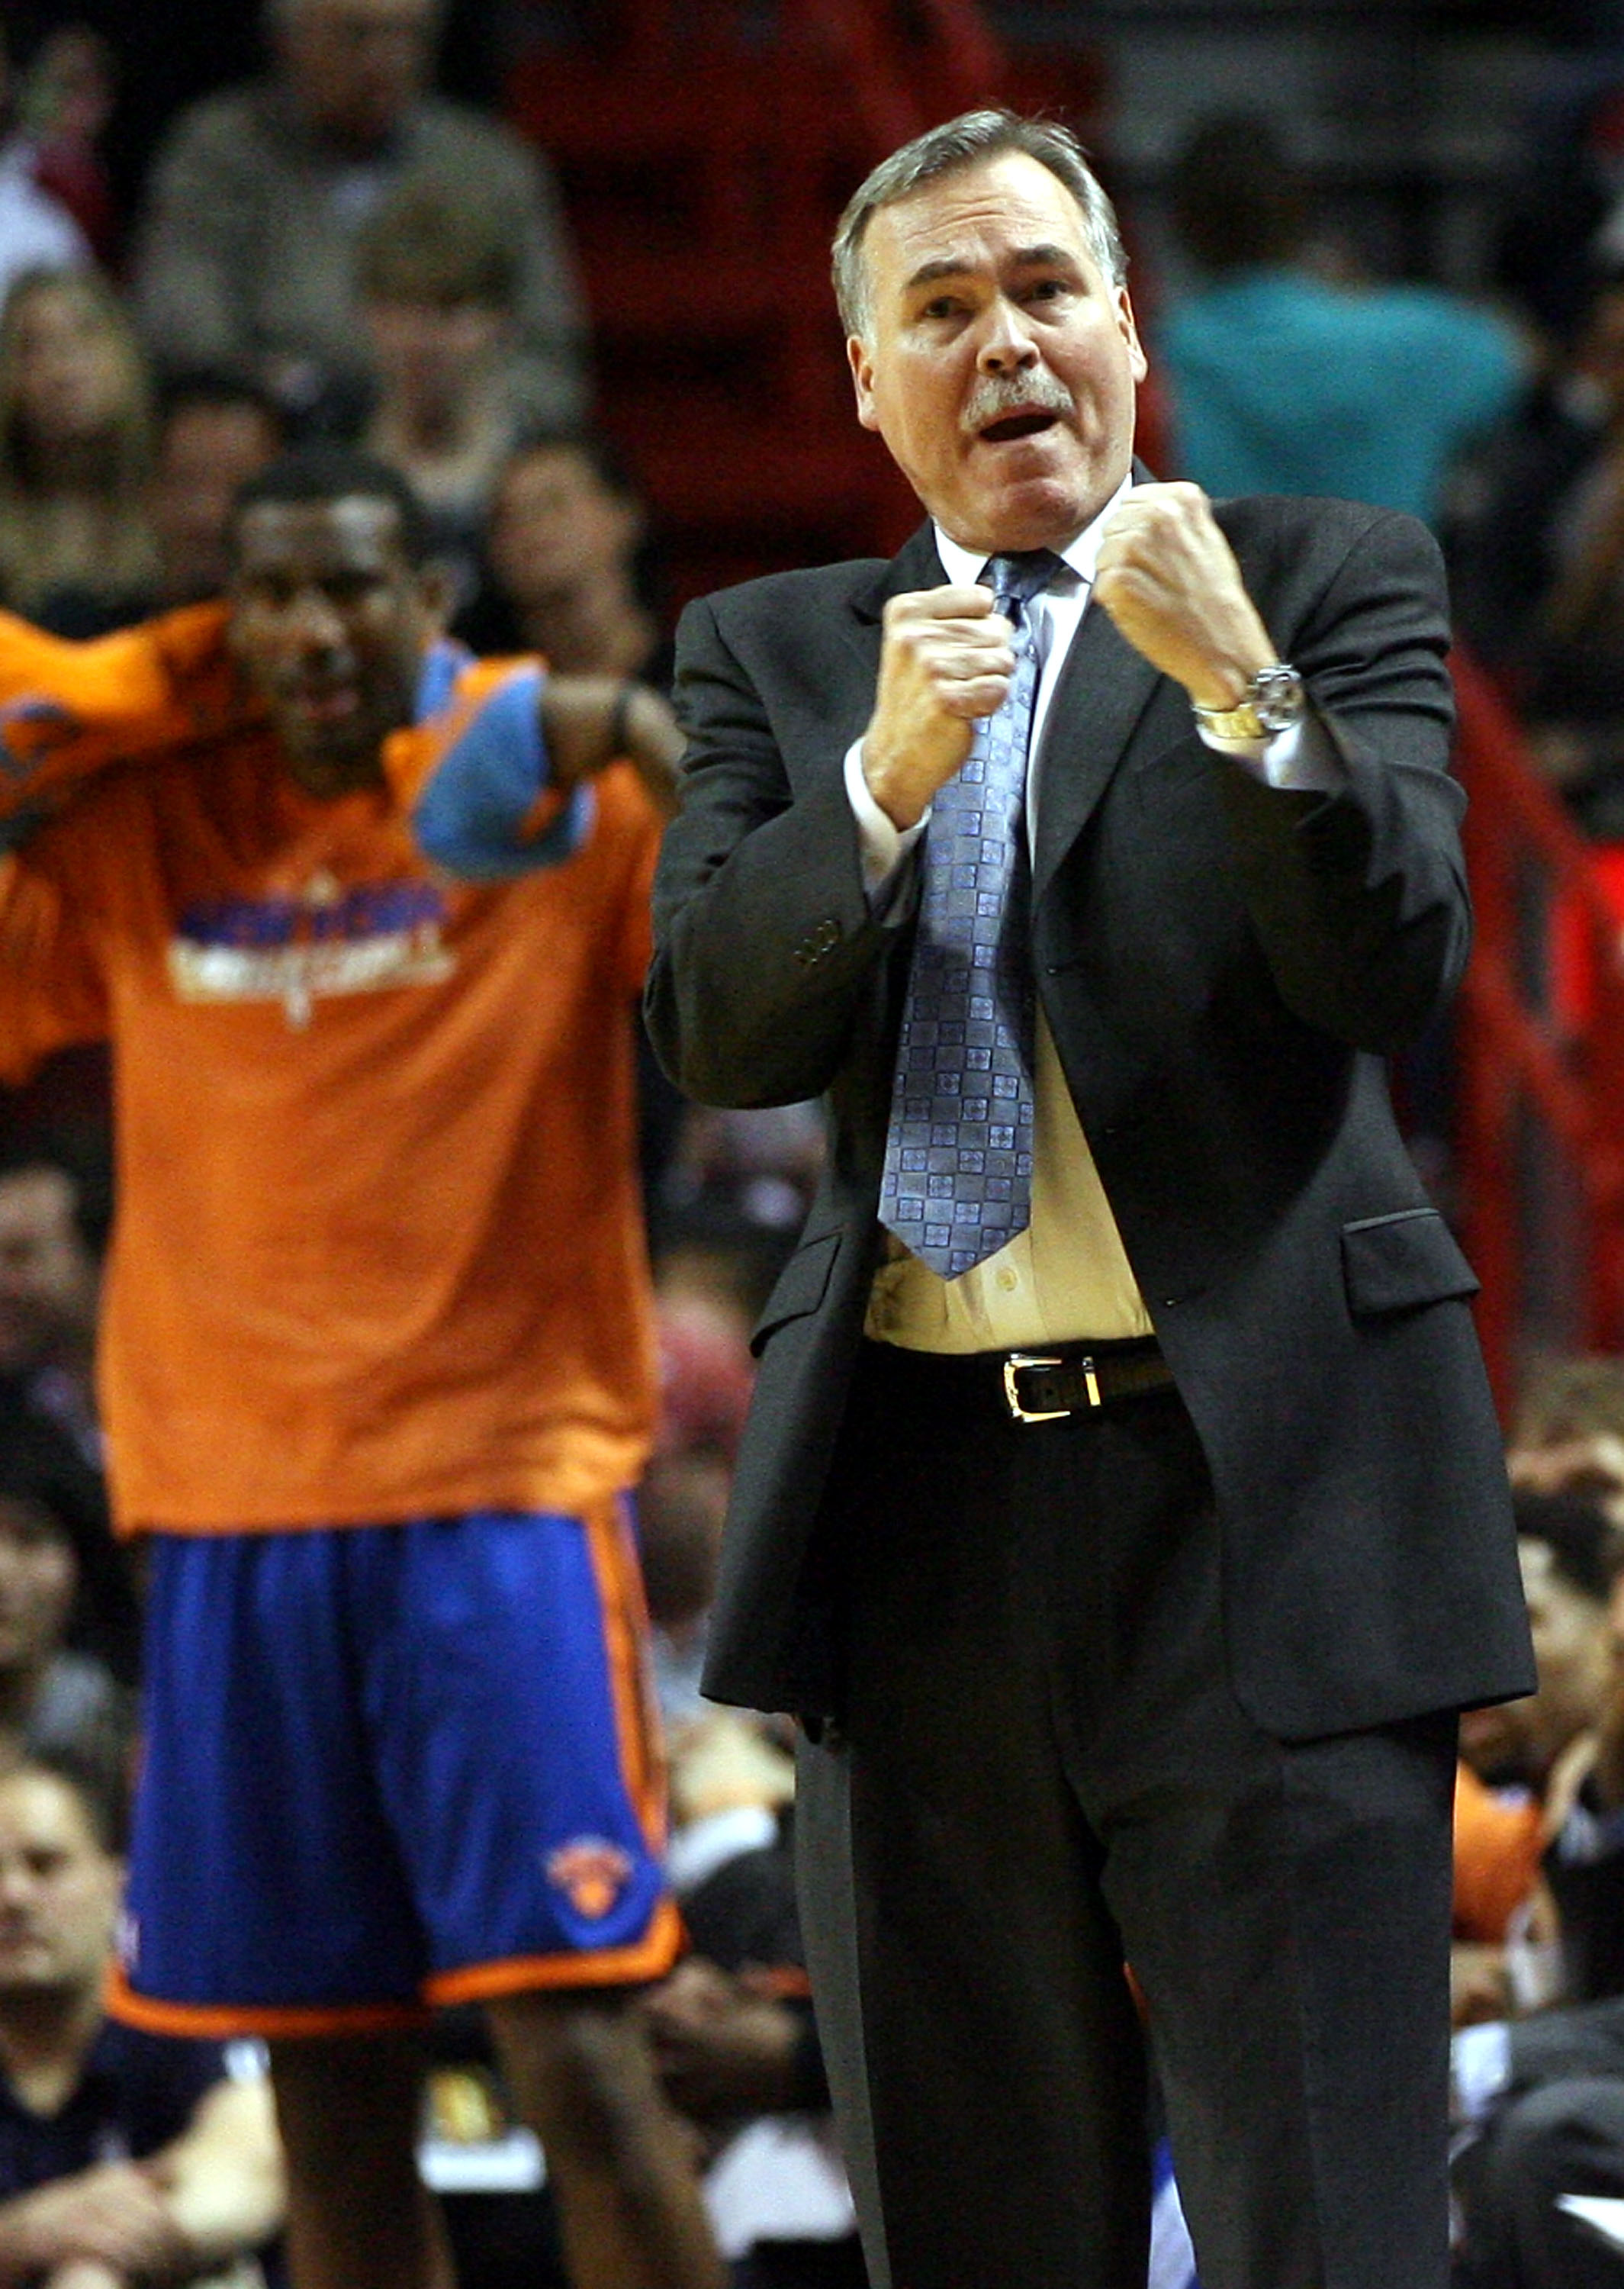 MIAMI - DECEMBER 28: Coach Mike D'Antoni of the New York Knicks shouts during a game against the Miami Heat at the American Airlines Arena on December 28, 2010 in Miami, Florida.  (Photo by Marc Serota/Getty Images)